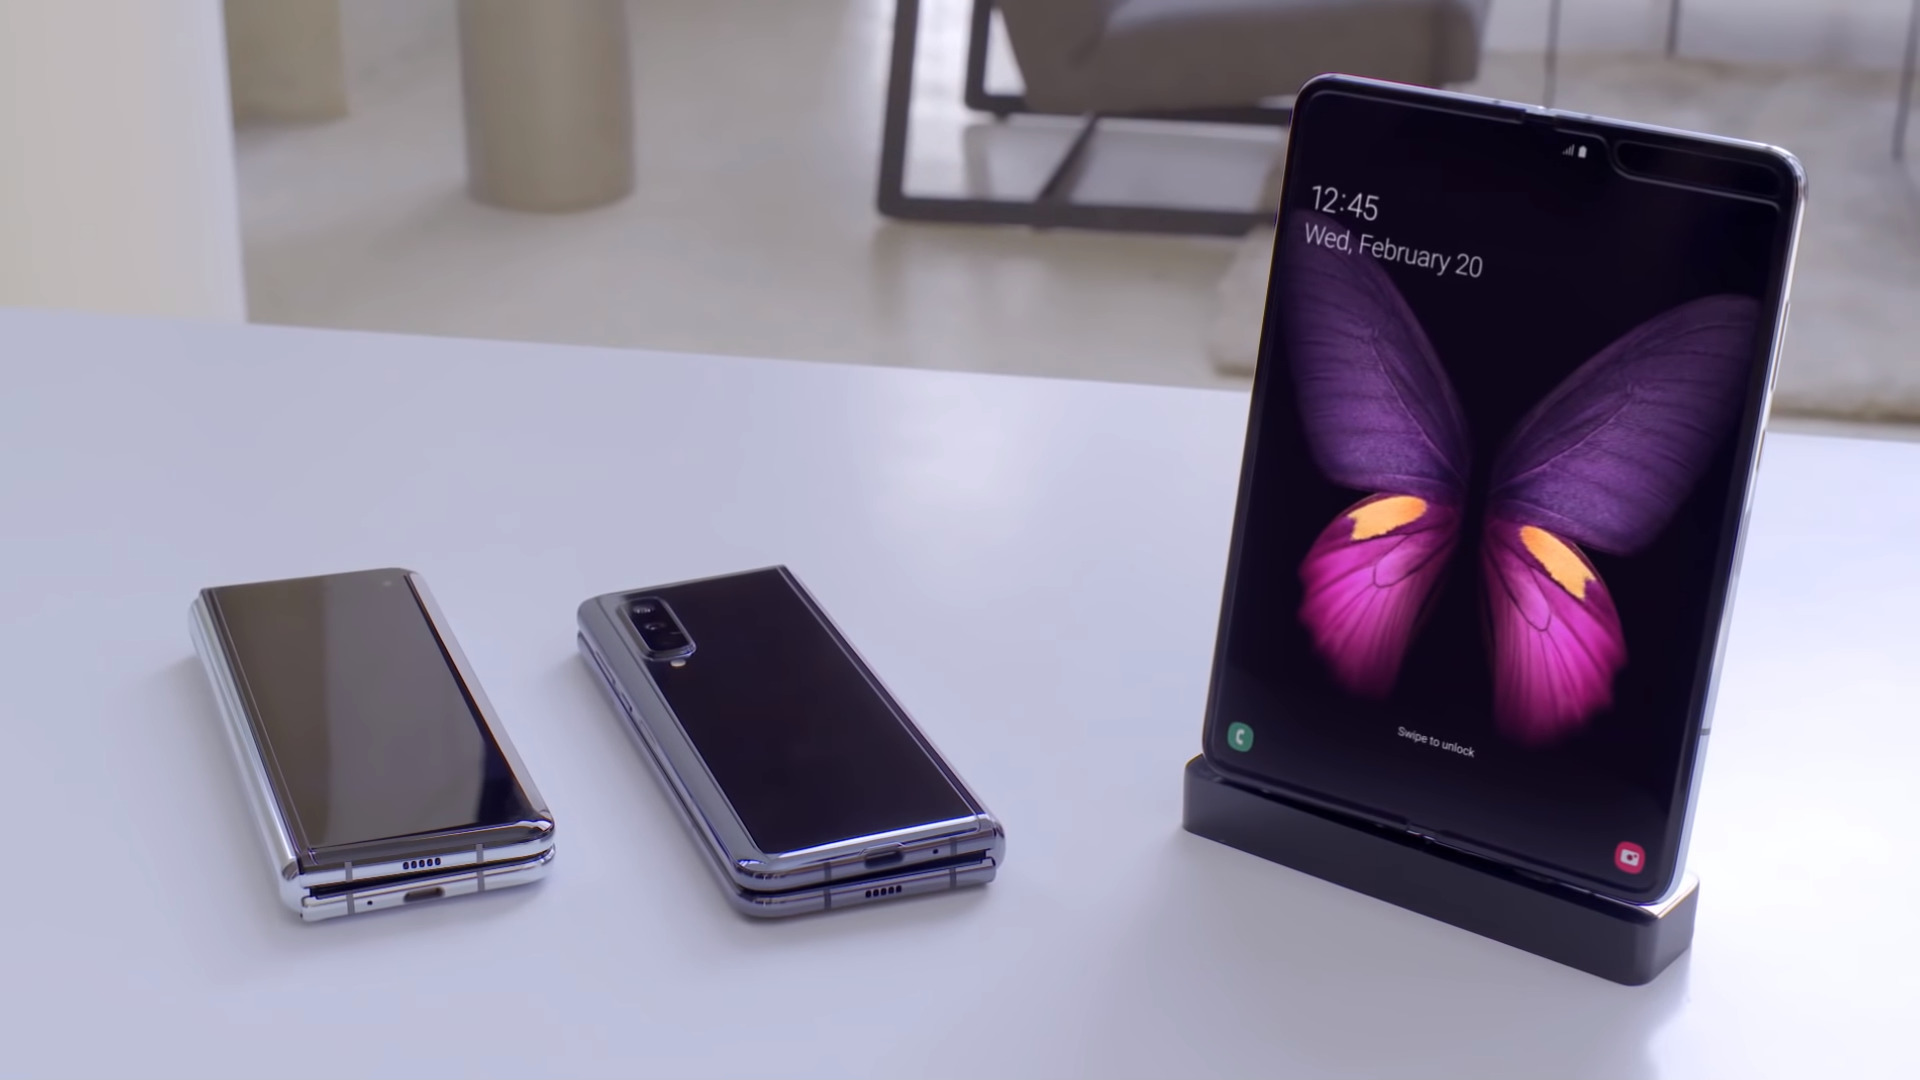 Samsung : l'écran du Galaxy Fold peut supporter 200 000 cycles de pliage